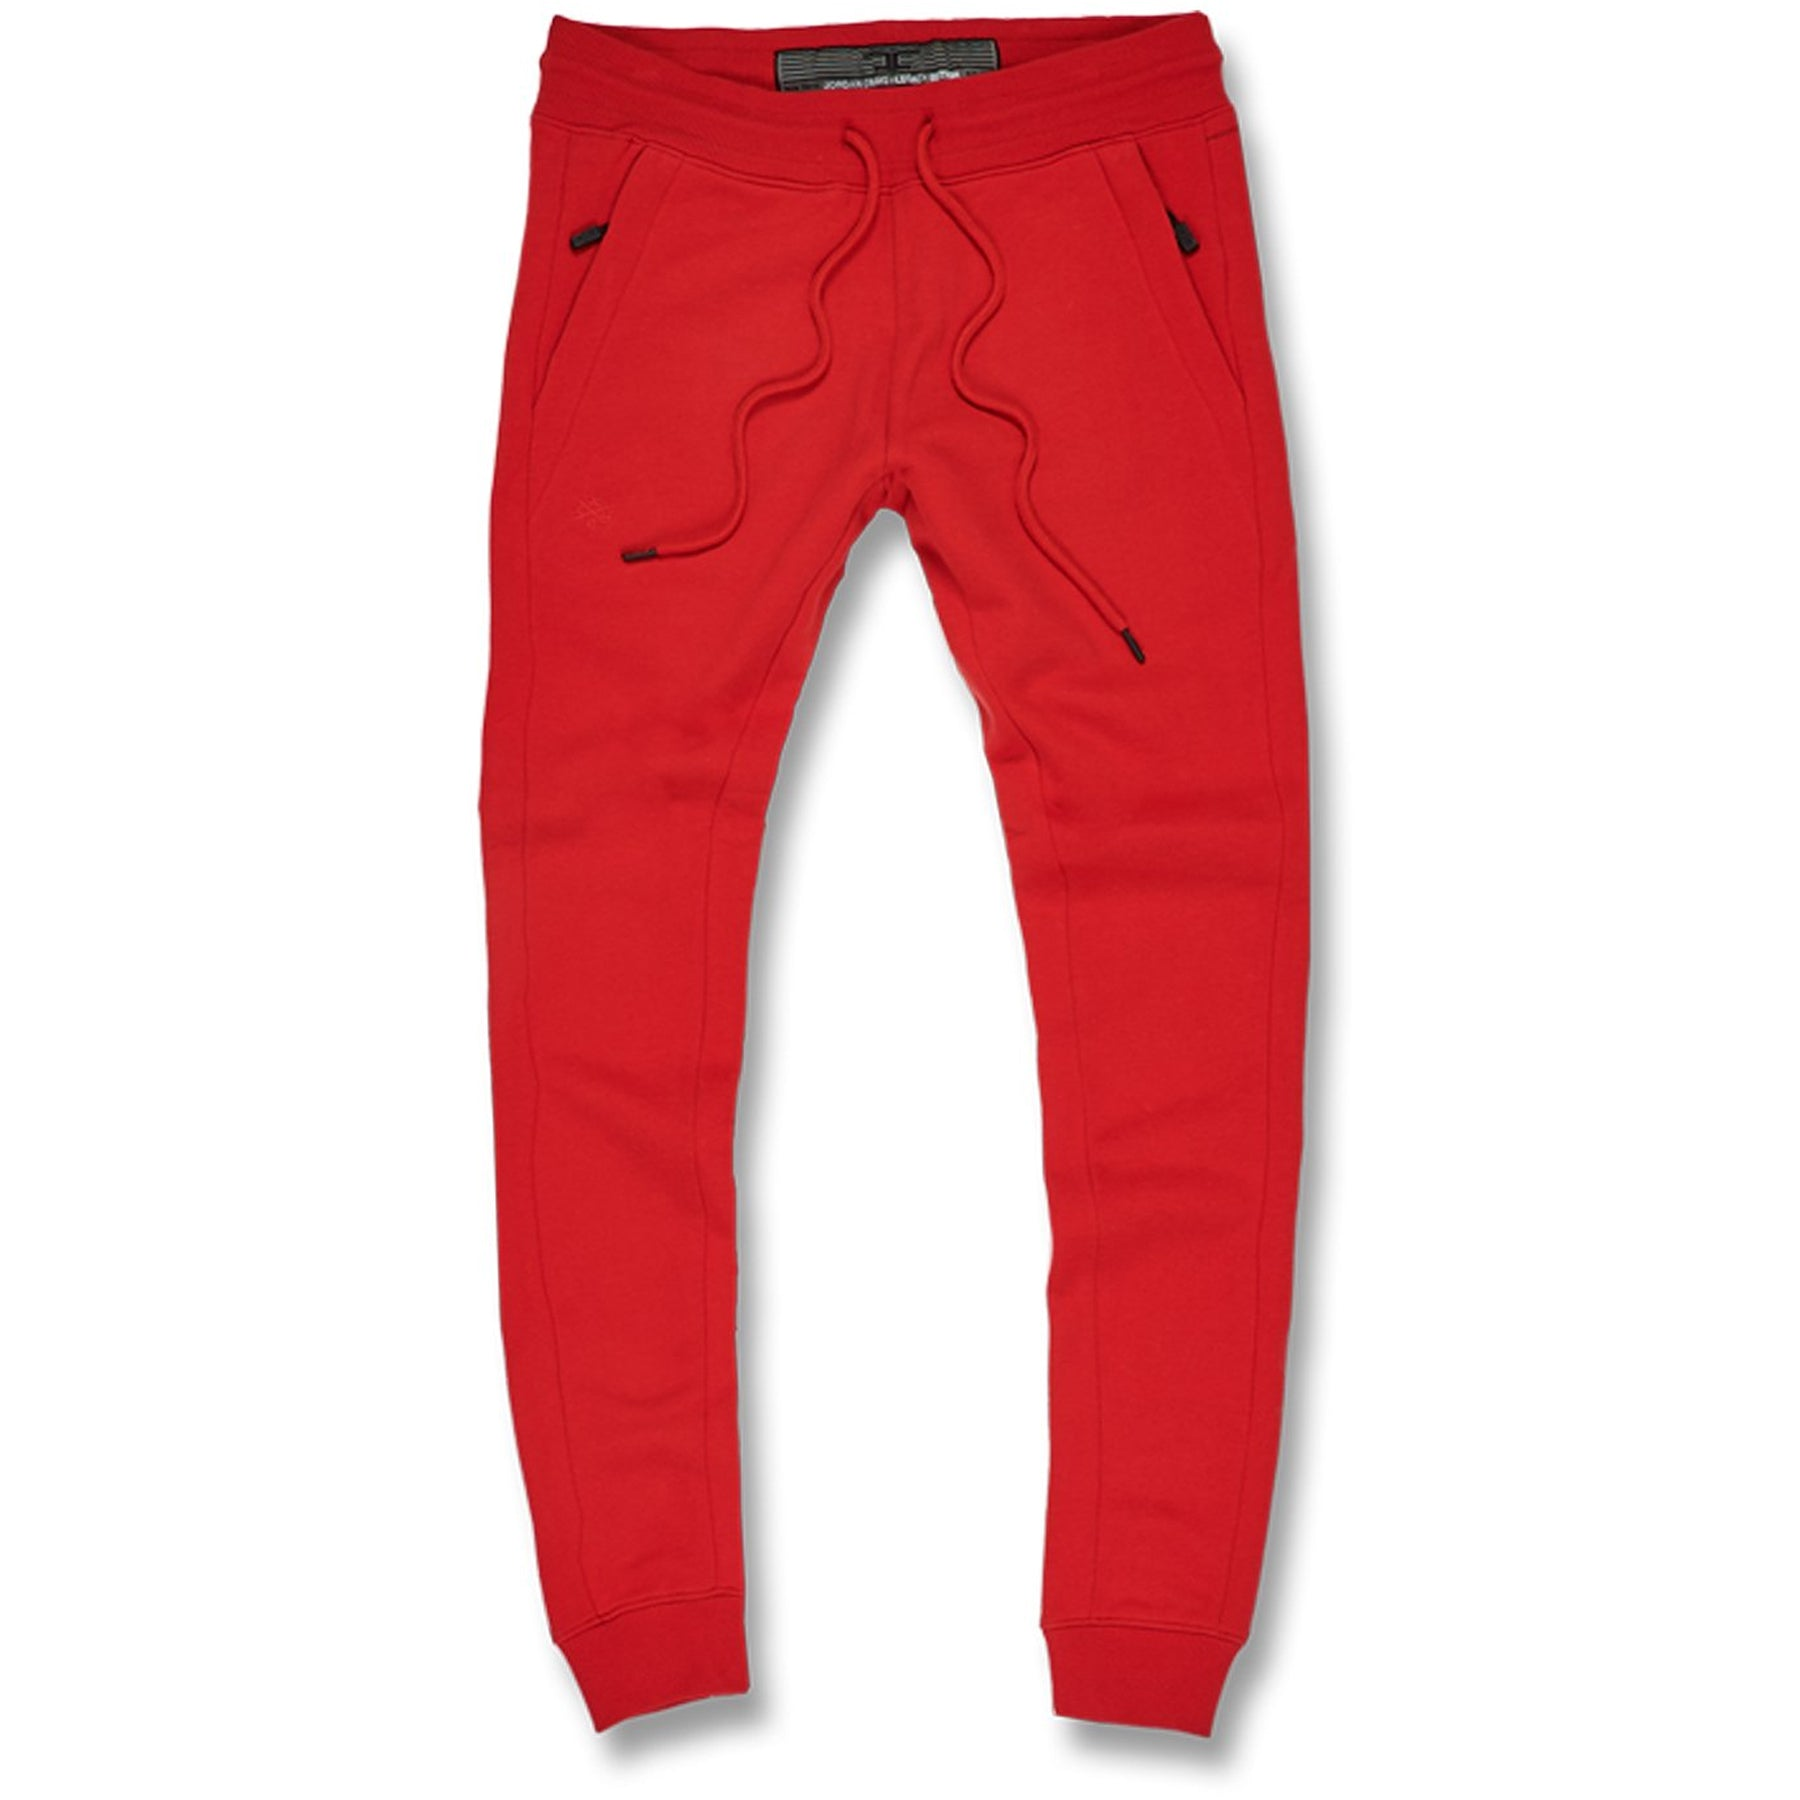 9d98d93e442073 the front of the red jordan craig fleece lined joggers feature an  adjustable string with pockets